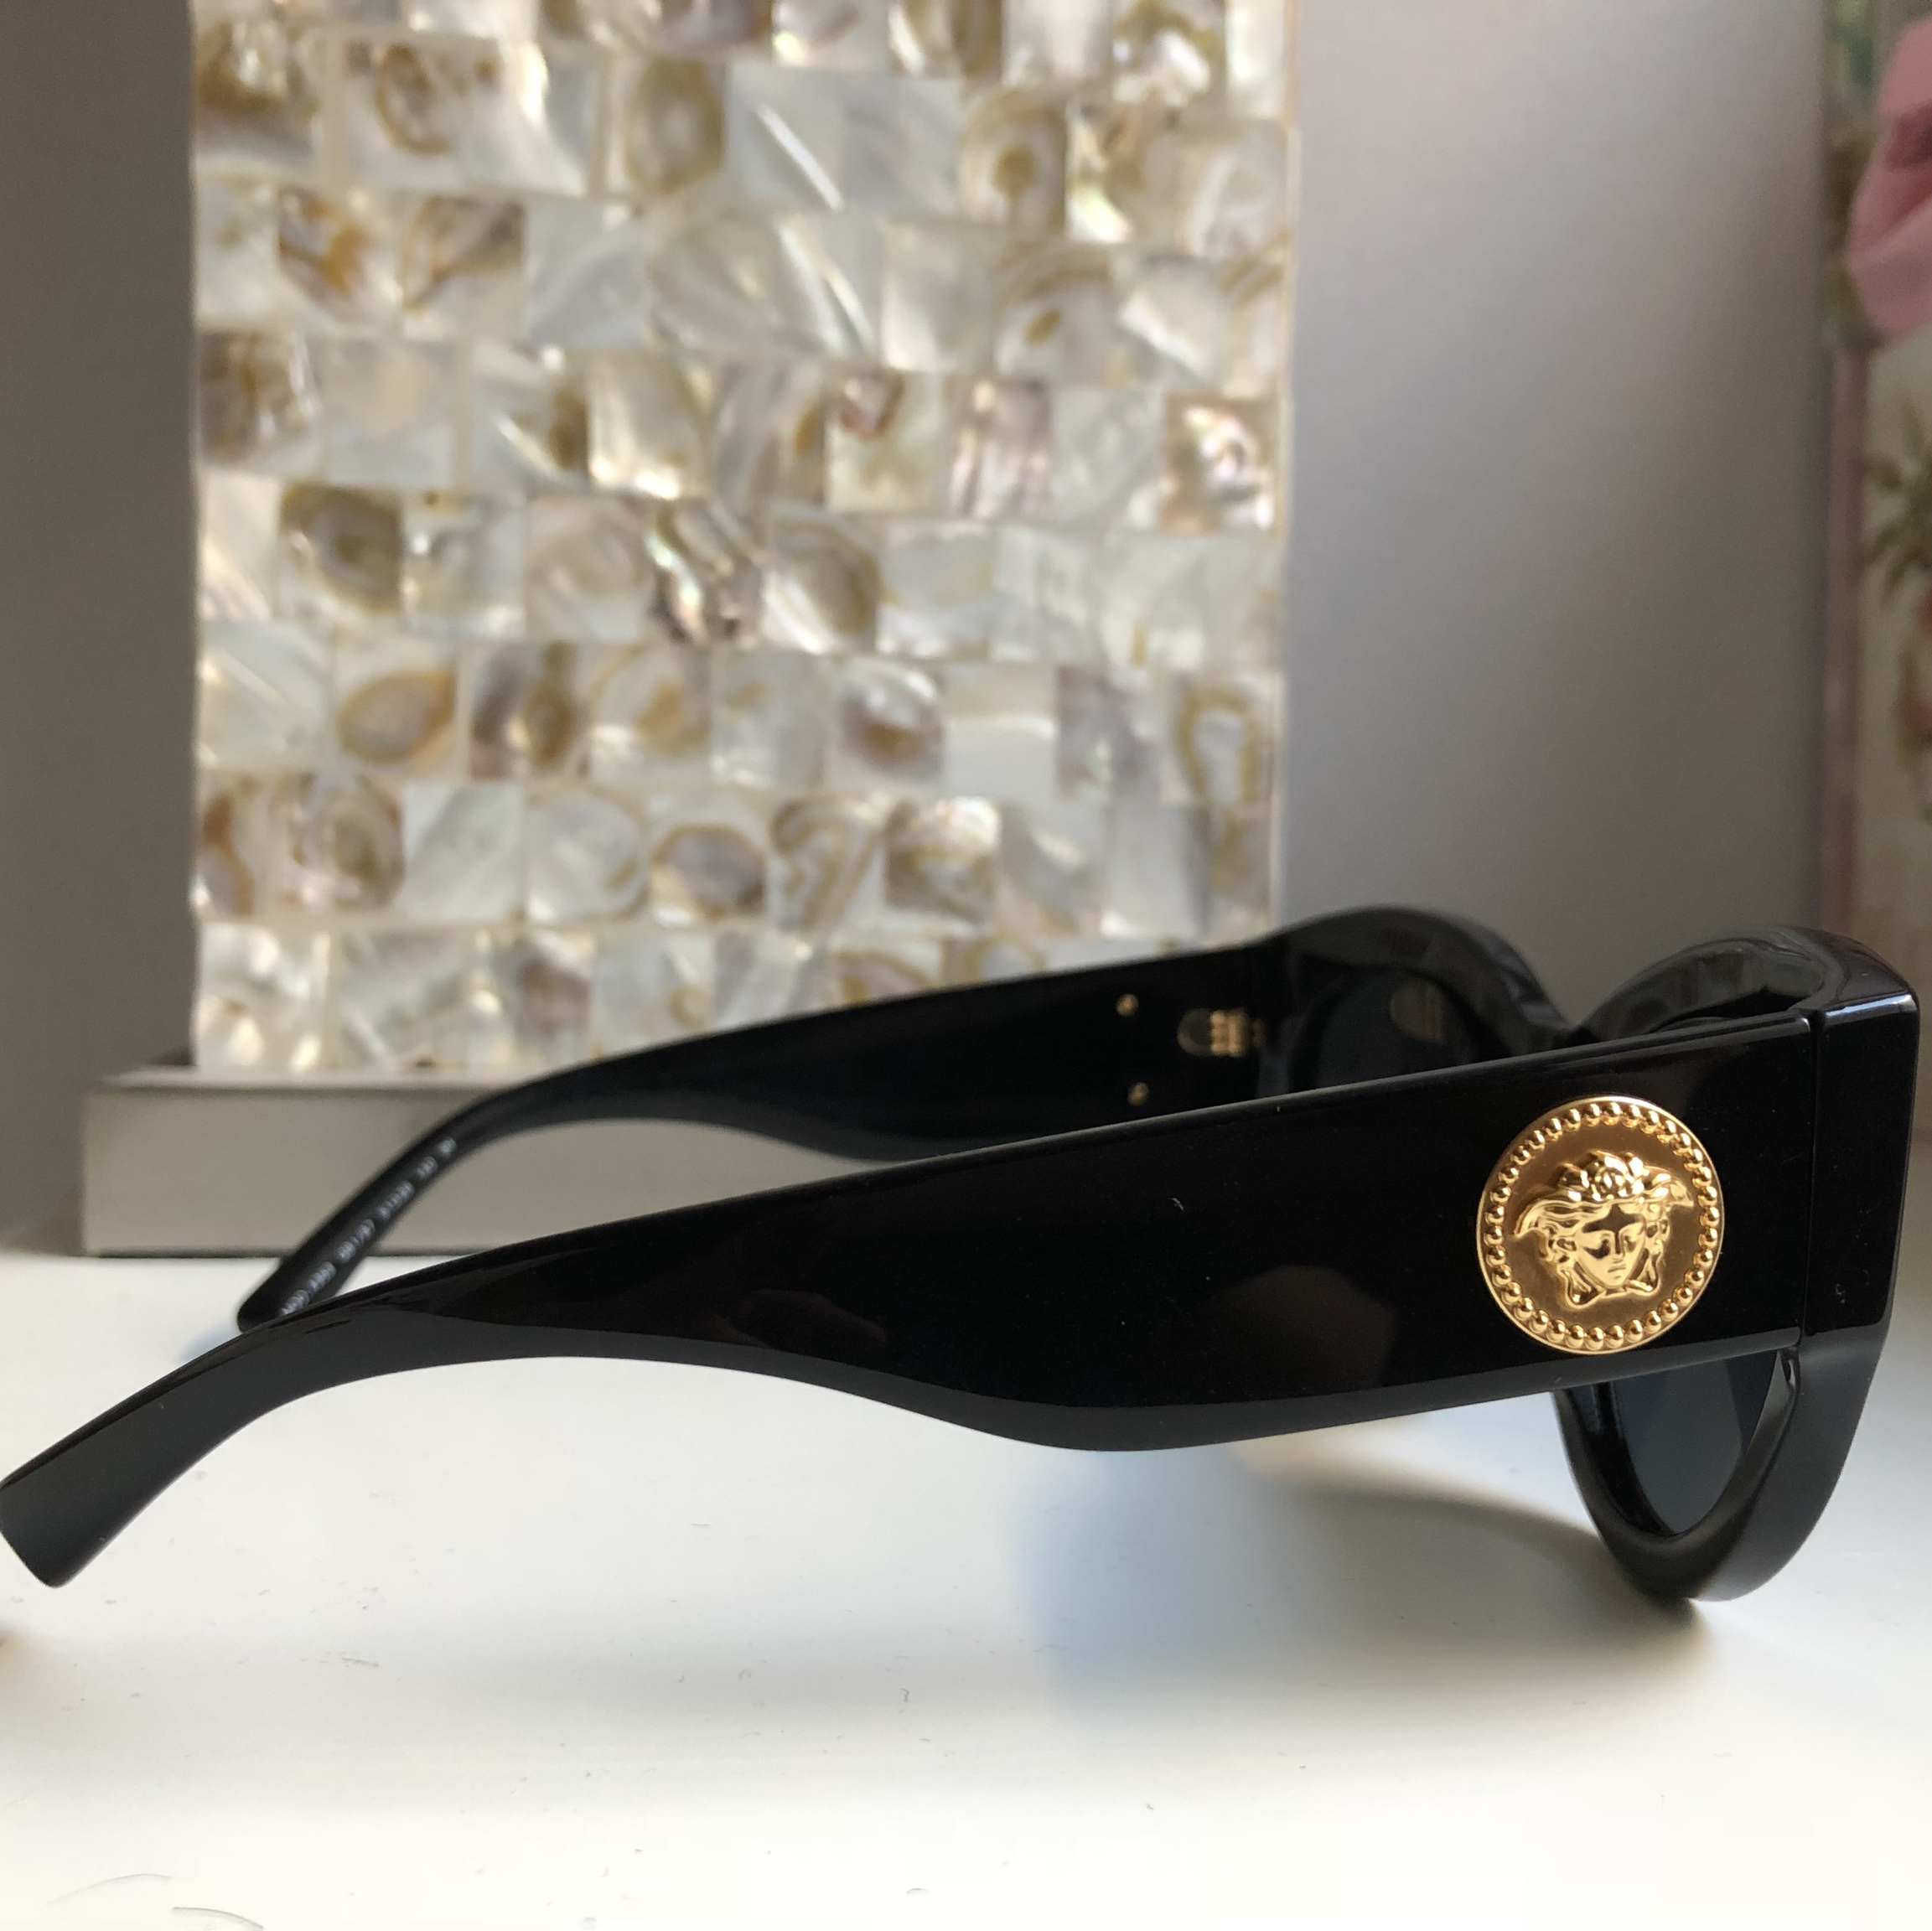 55e3f7d03991 VE4353 Versace Sunglasses. Tribute Collection from... - Depop